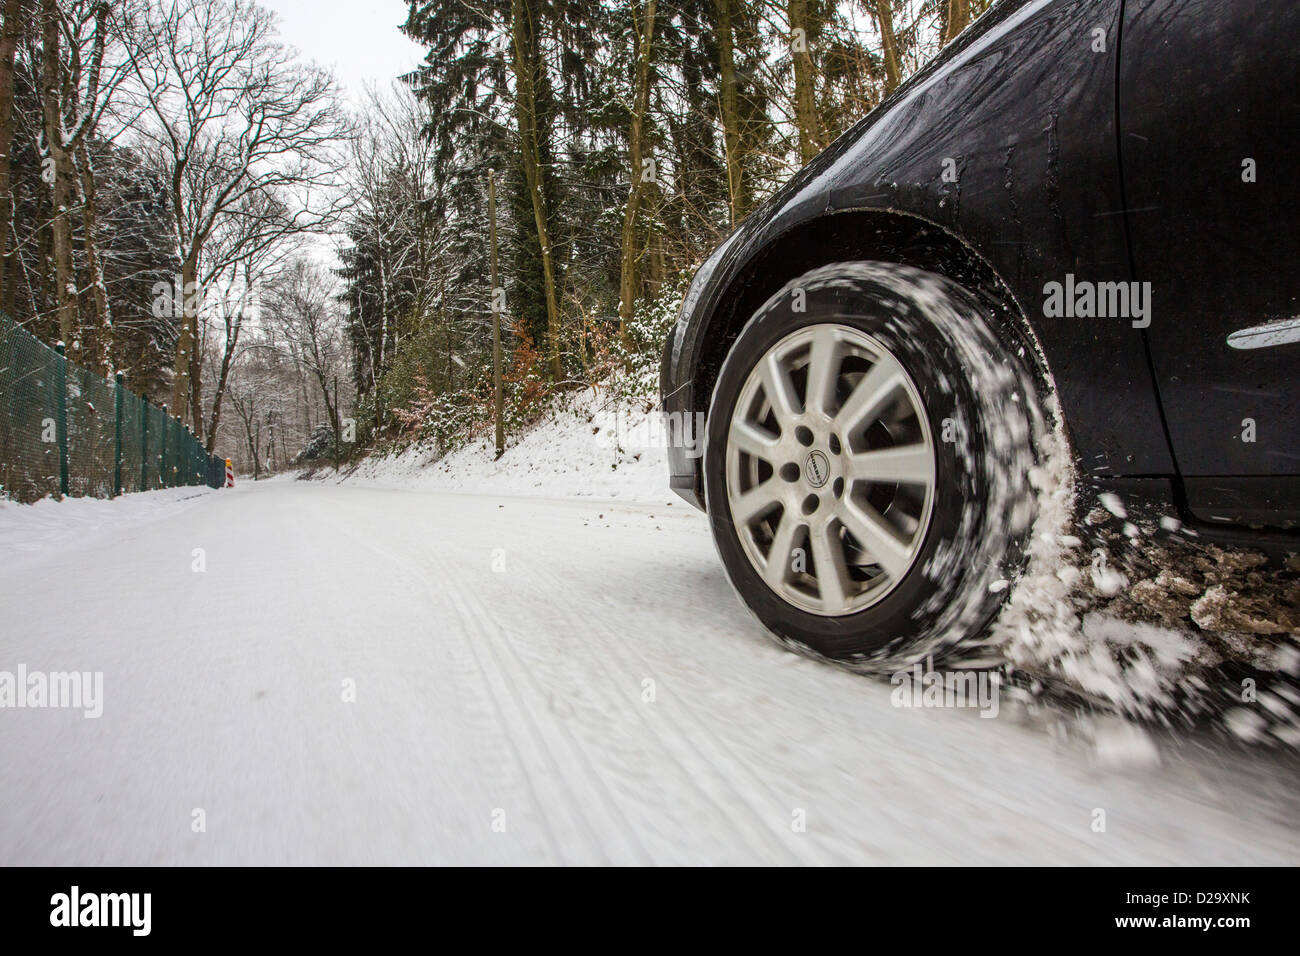 Car with winter tires drives on a street, completely covered with snow. - Stock Image